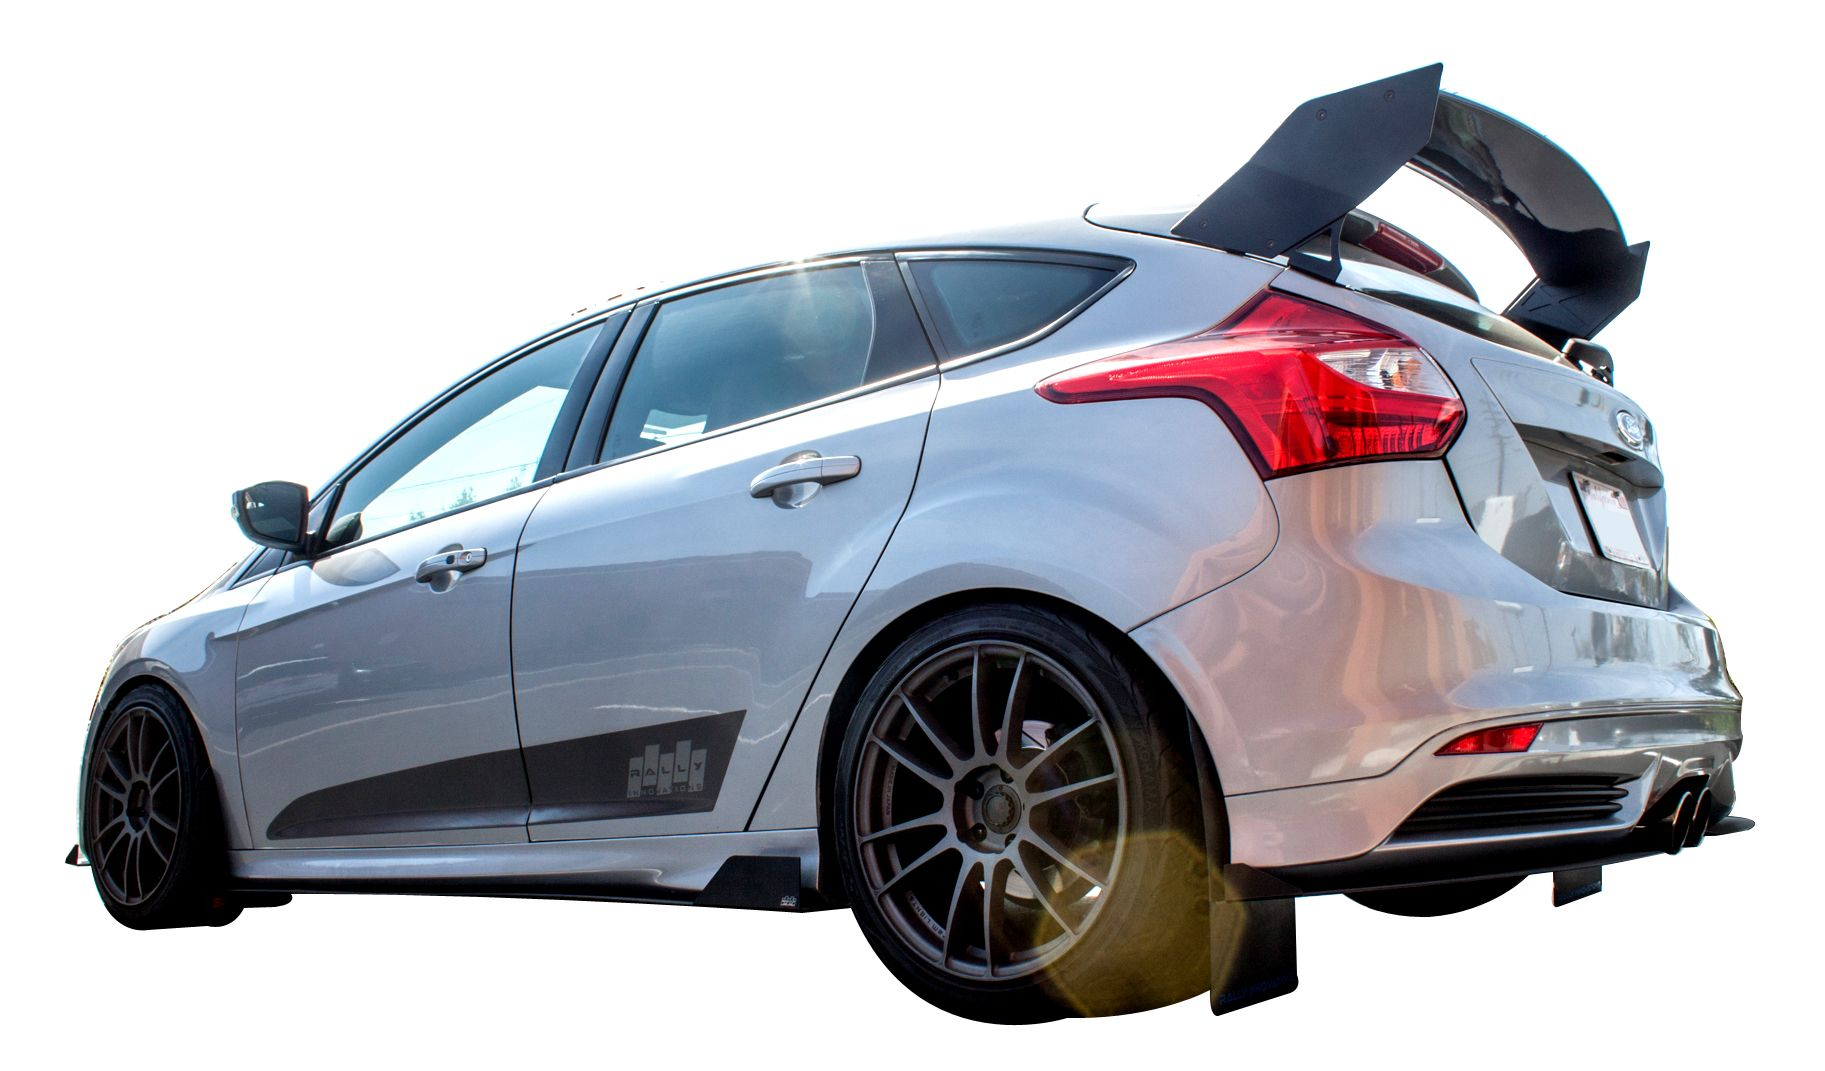 Race Rear Wing Spoiler for 2013-17 Ford Focus ST / RS [MK 3 ST250] by Rally Innovations